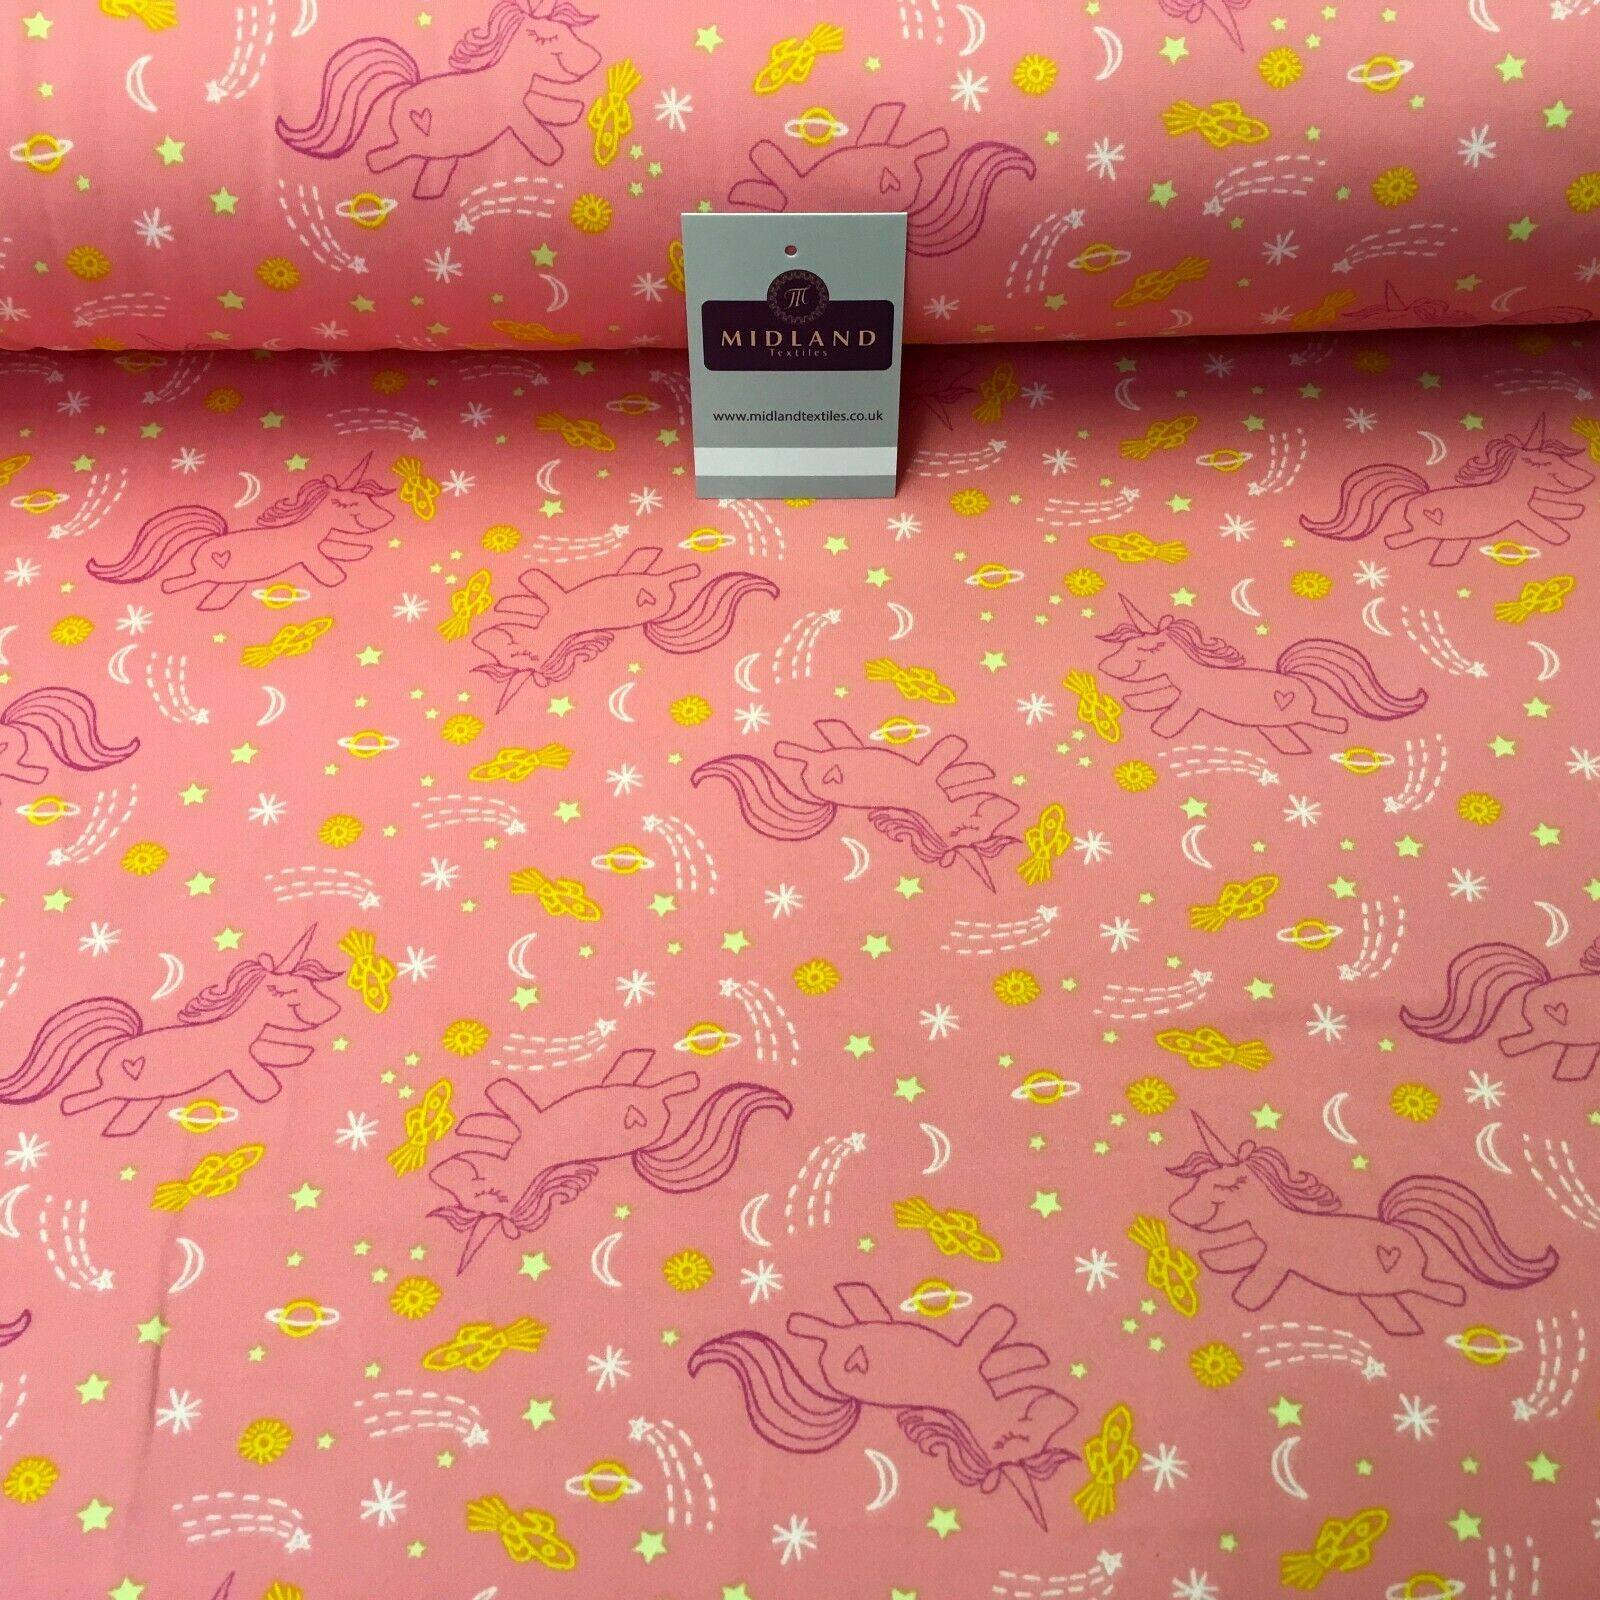 Coral Pink Unicorns Printed Brushed Jersey Dress fabric 150cm Wide MK1106-5 Mtex